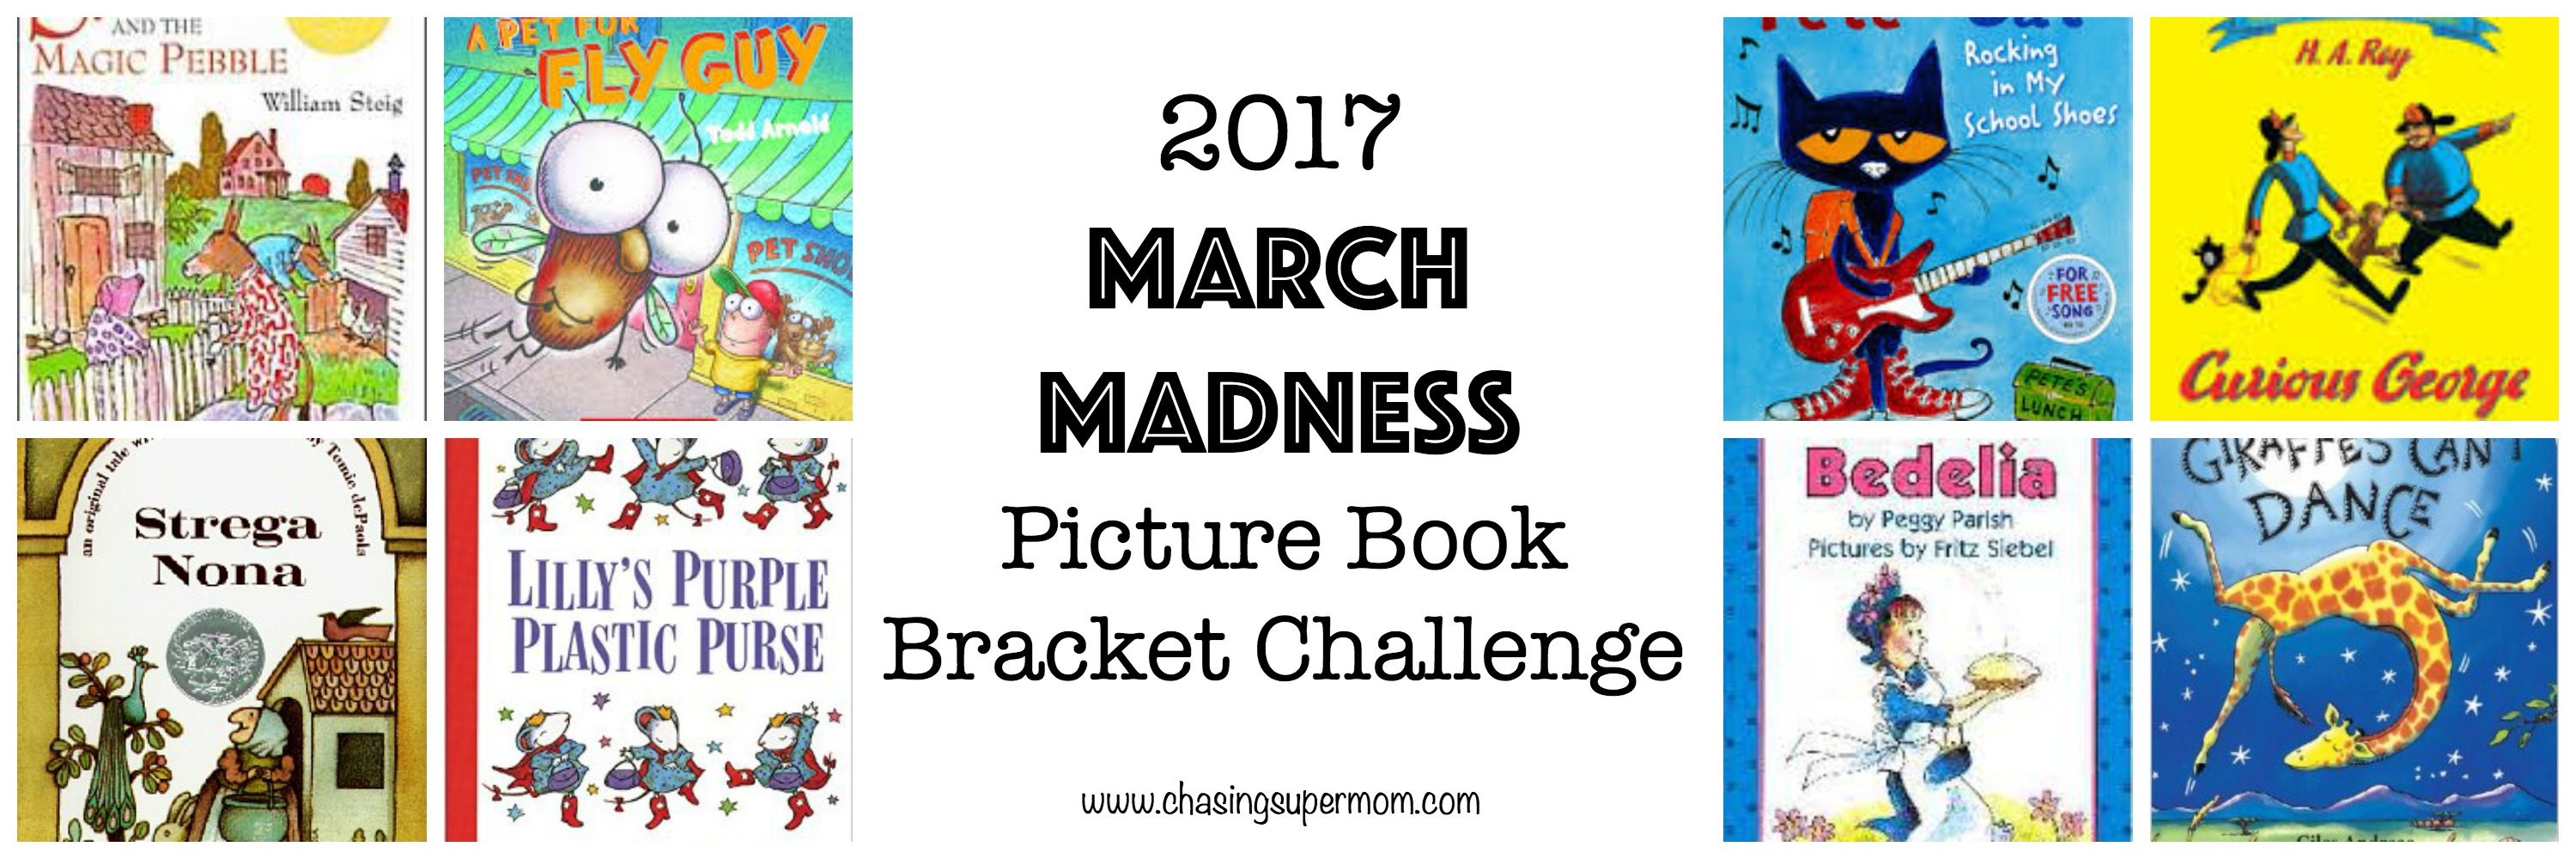 2017 March Madness Picture Book Bracket Challenge